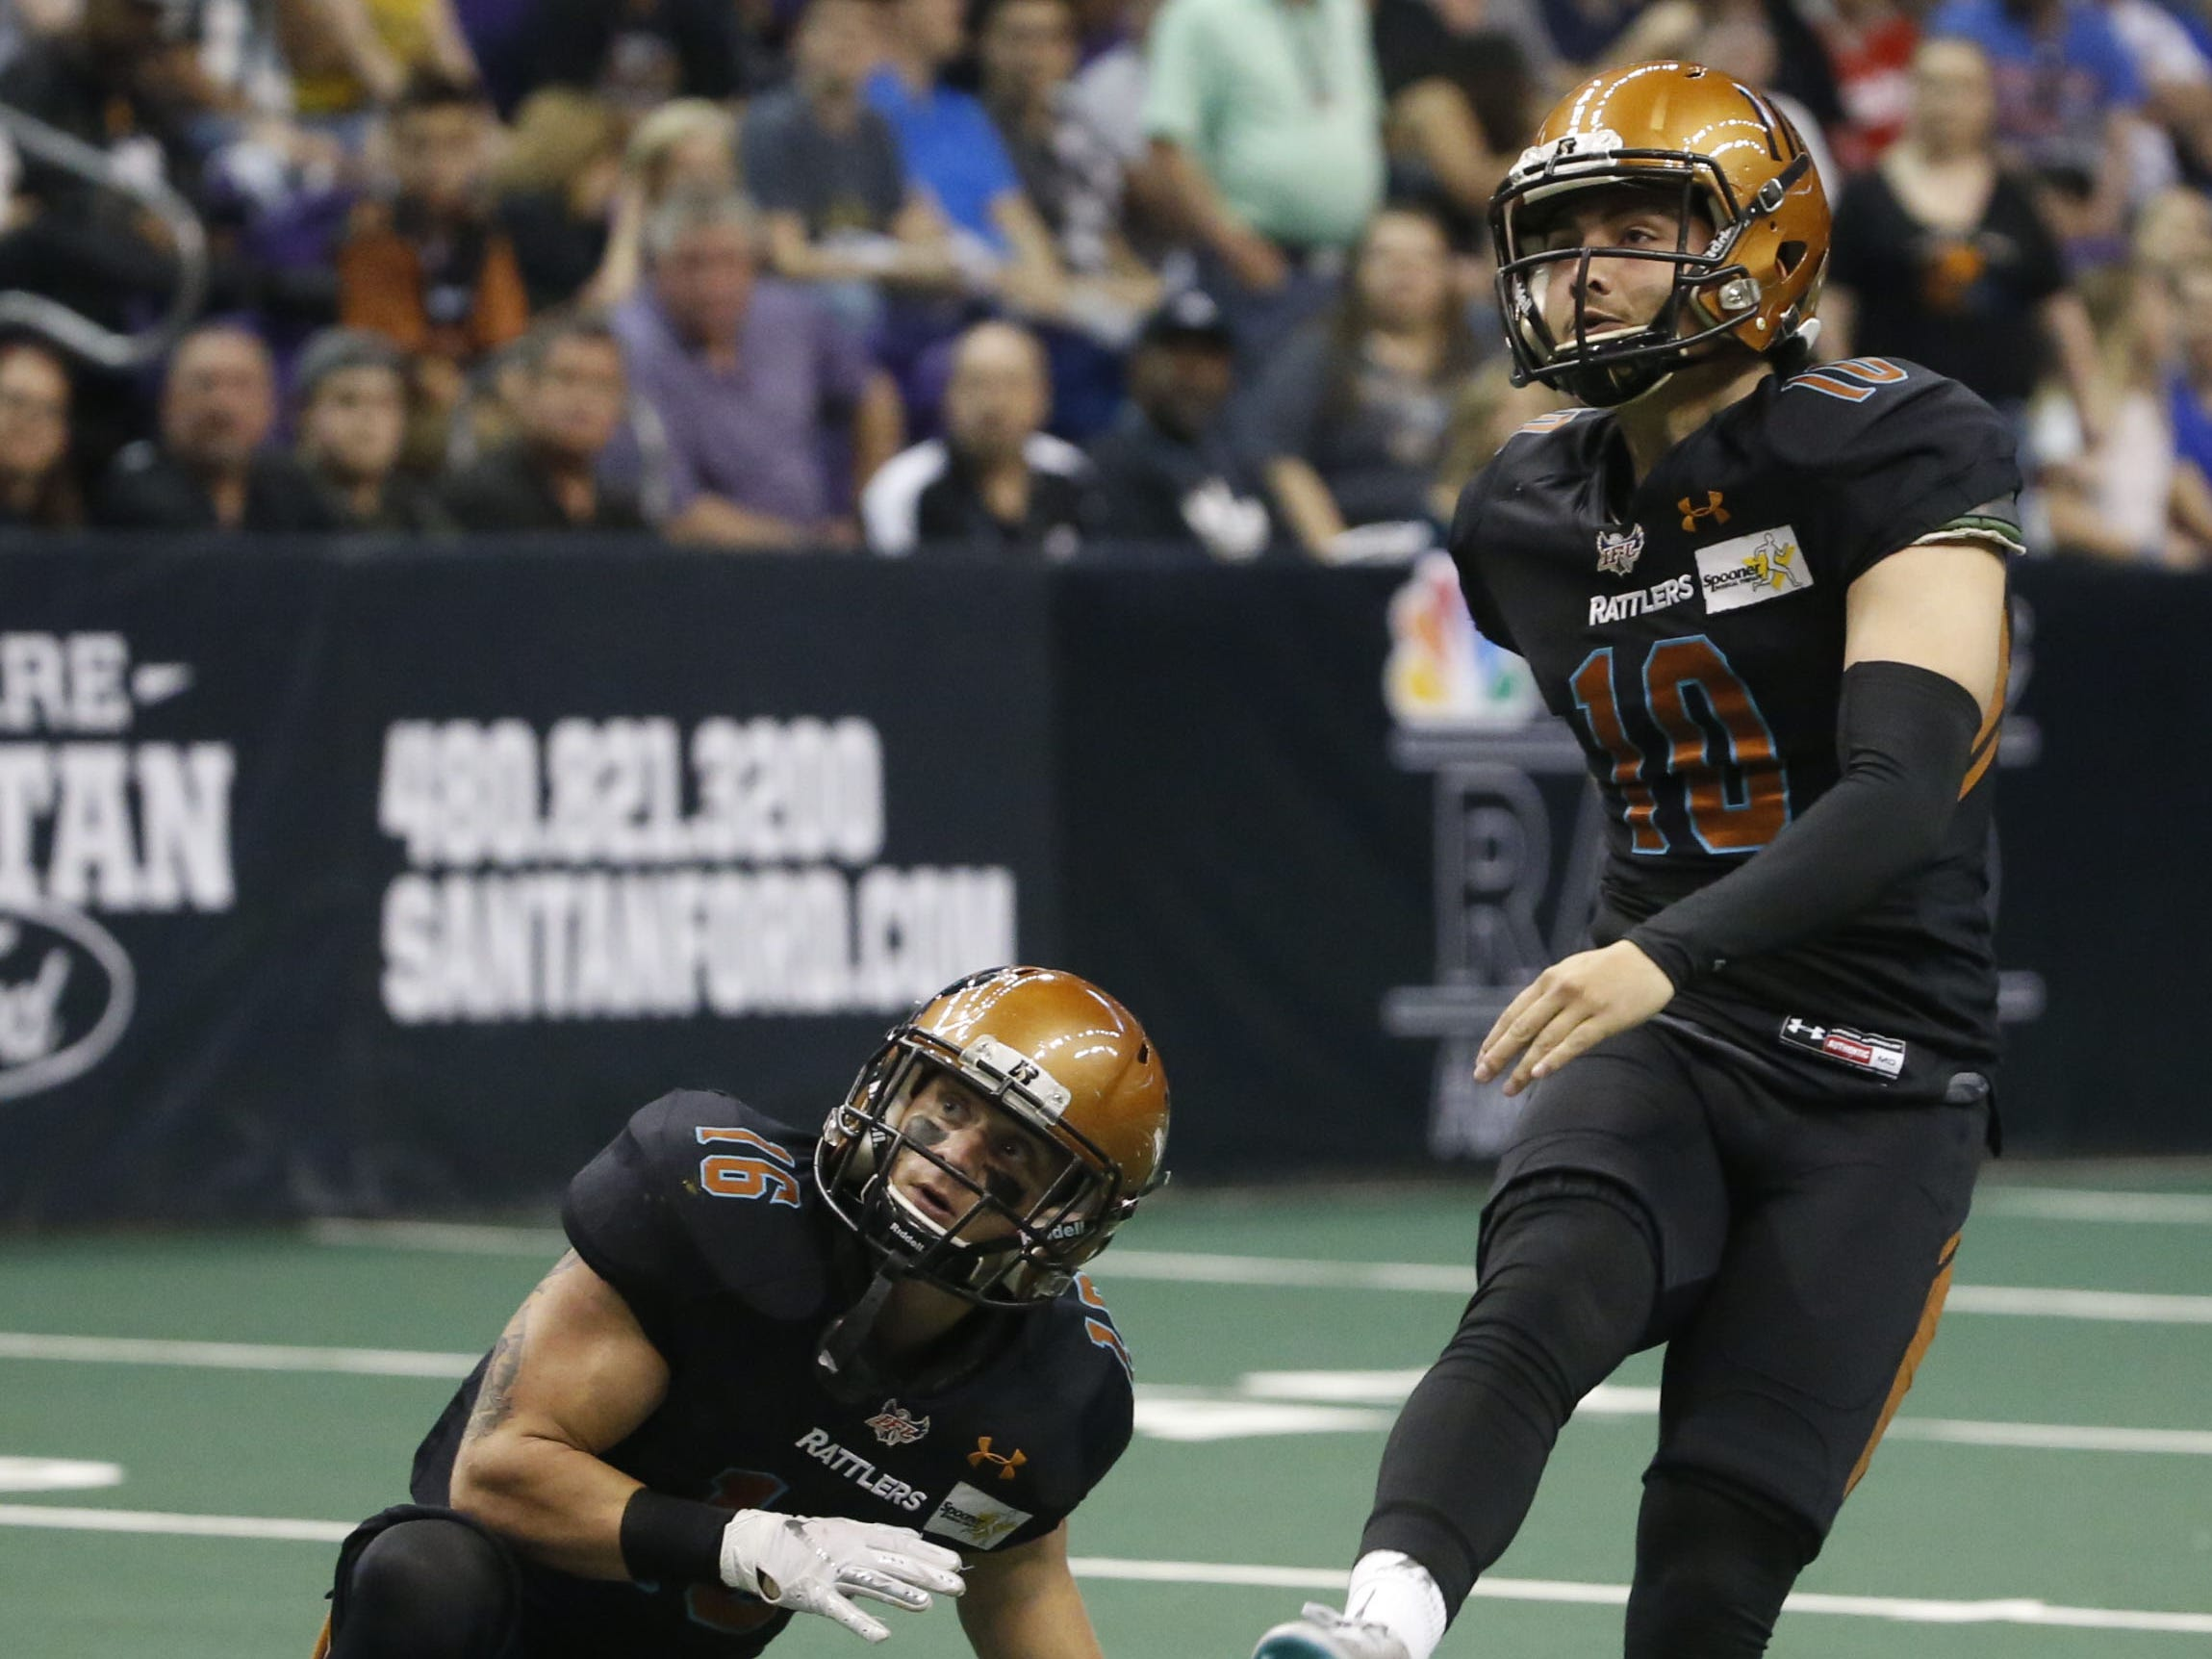 Rattlers' Jimmy Camacho (10) makes an extra point against the Sugar Skulls during the first half at Talking Stick Resort Arena in Phoenix, Ariz. on March 16, 2019.